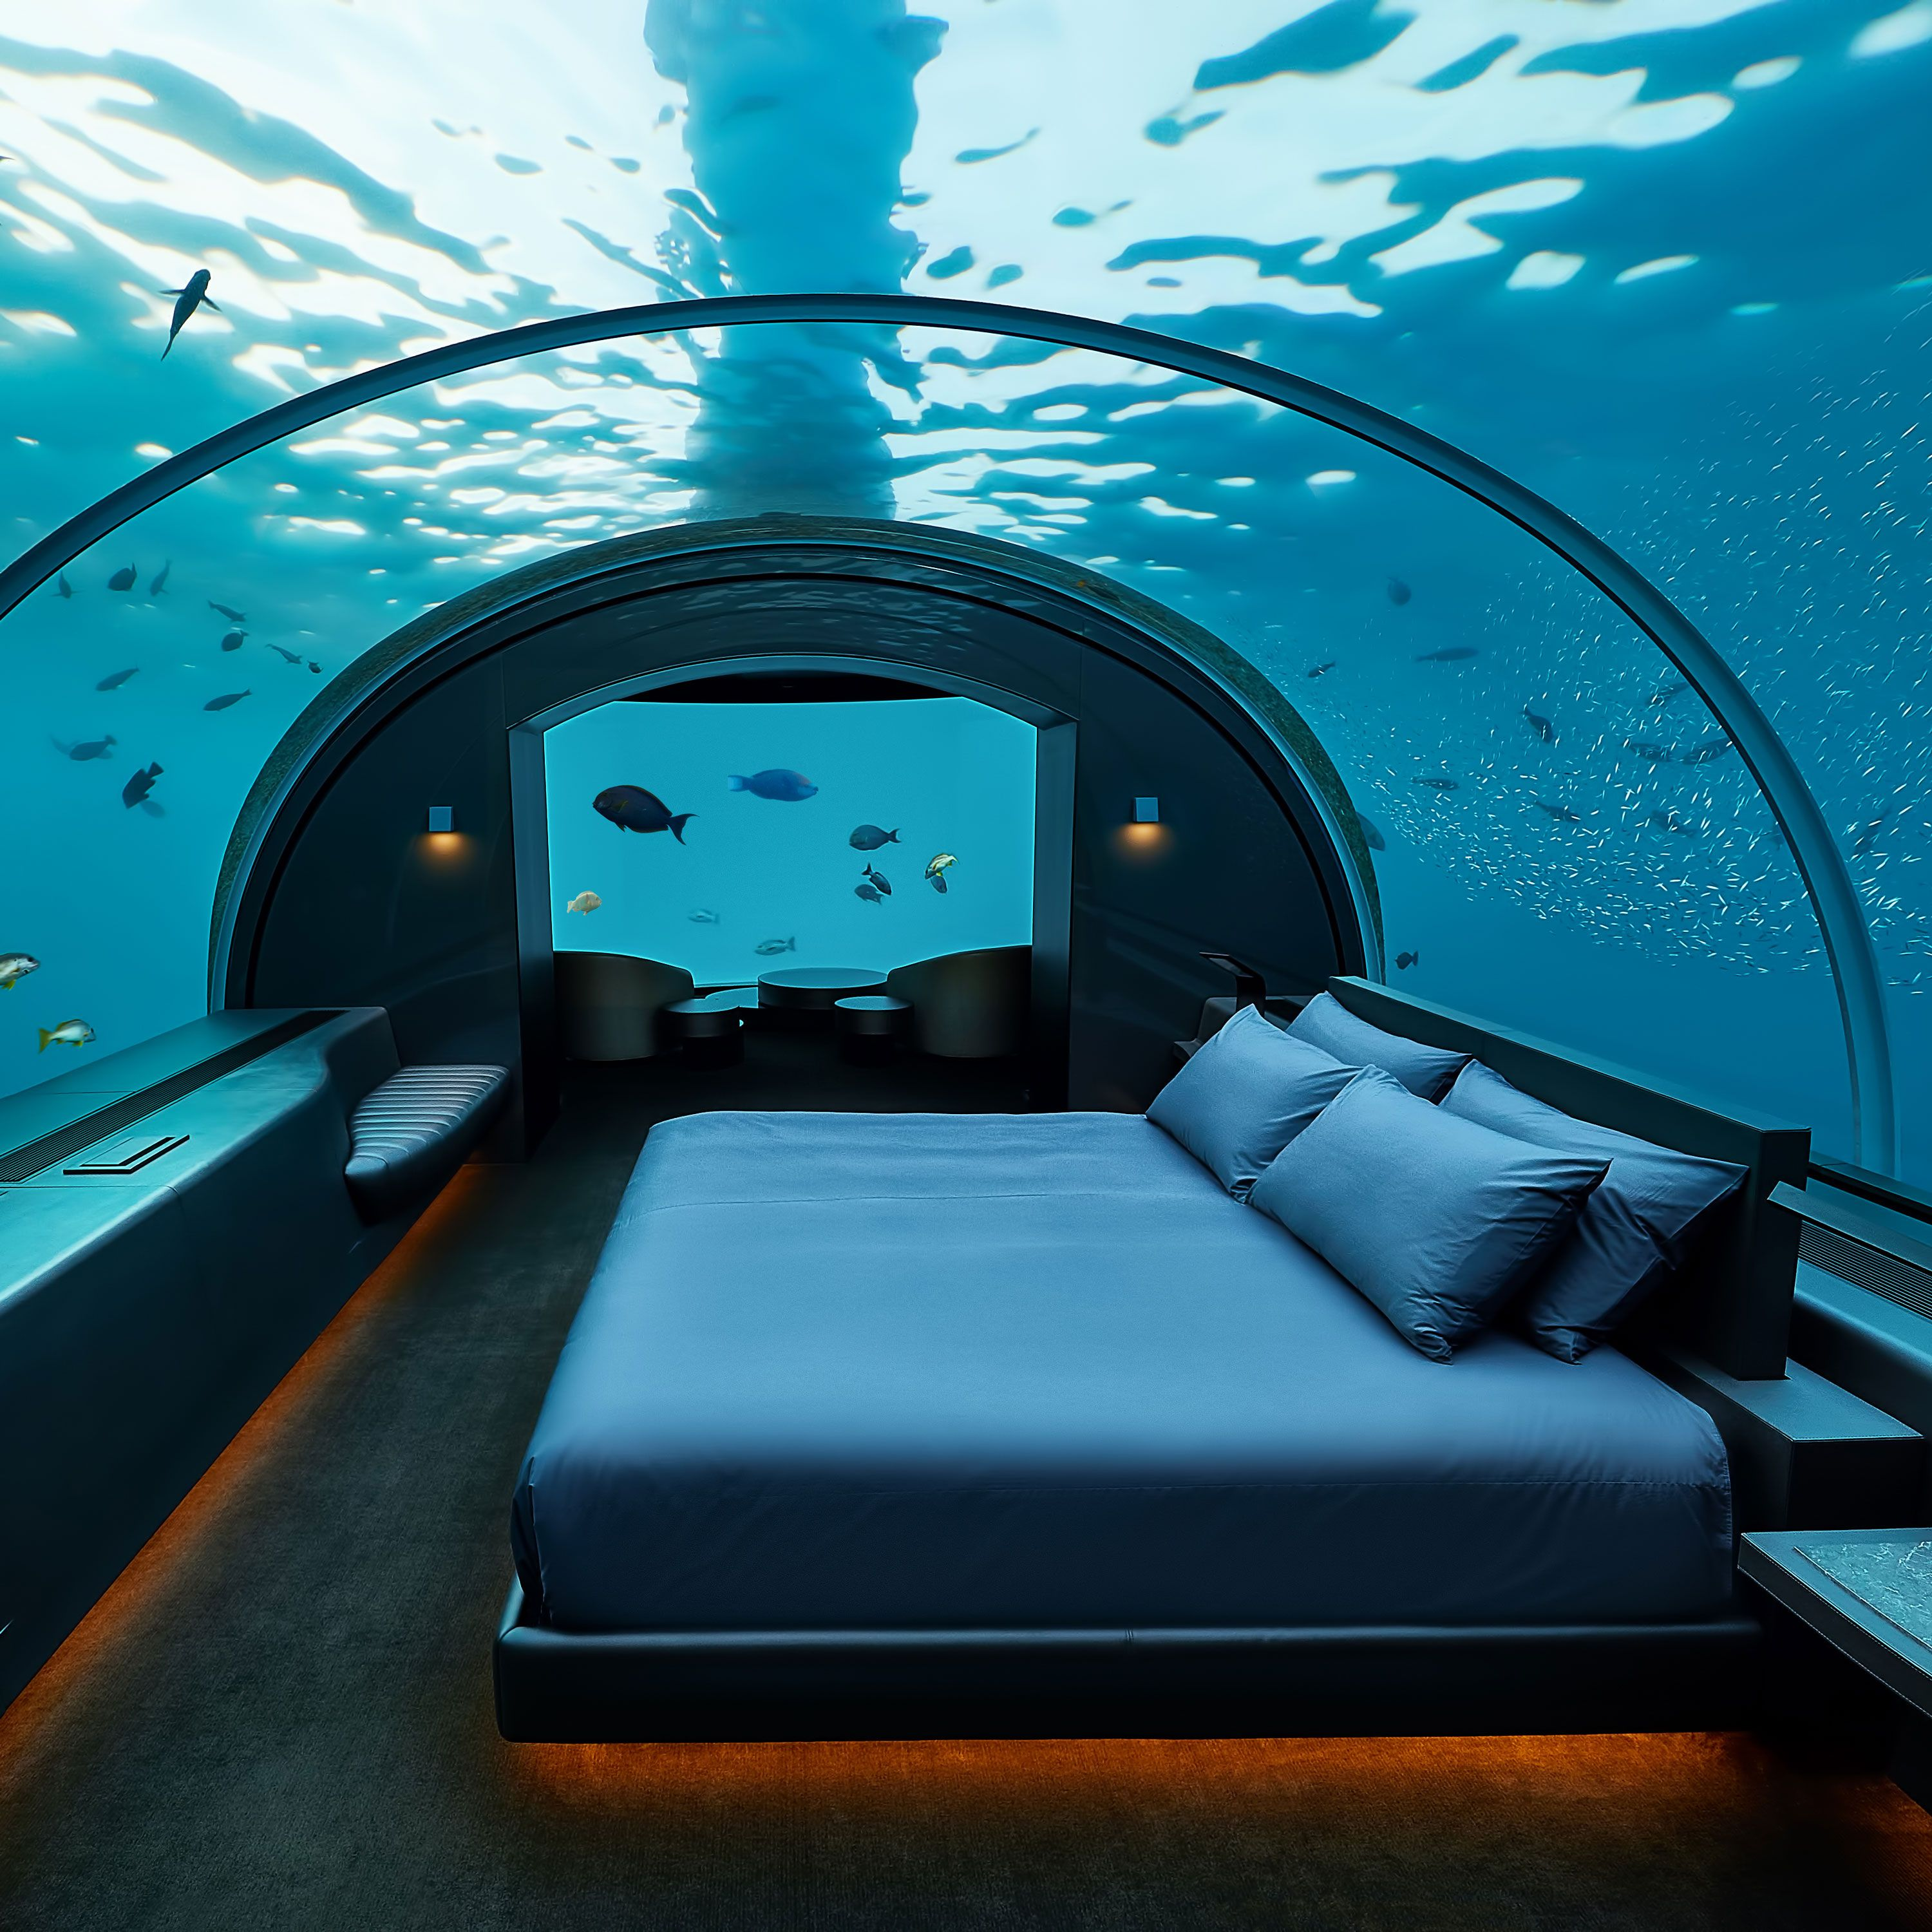 12 of the most jaw-dropping hotel beds that you will never want to leave